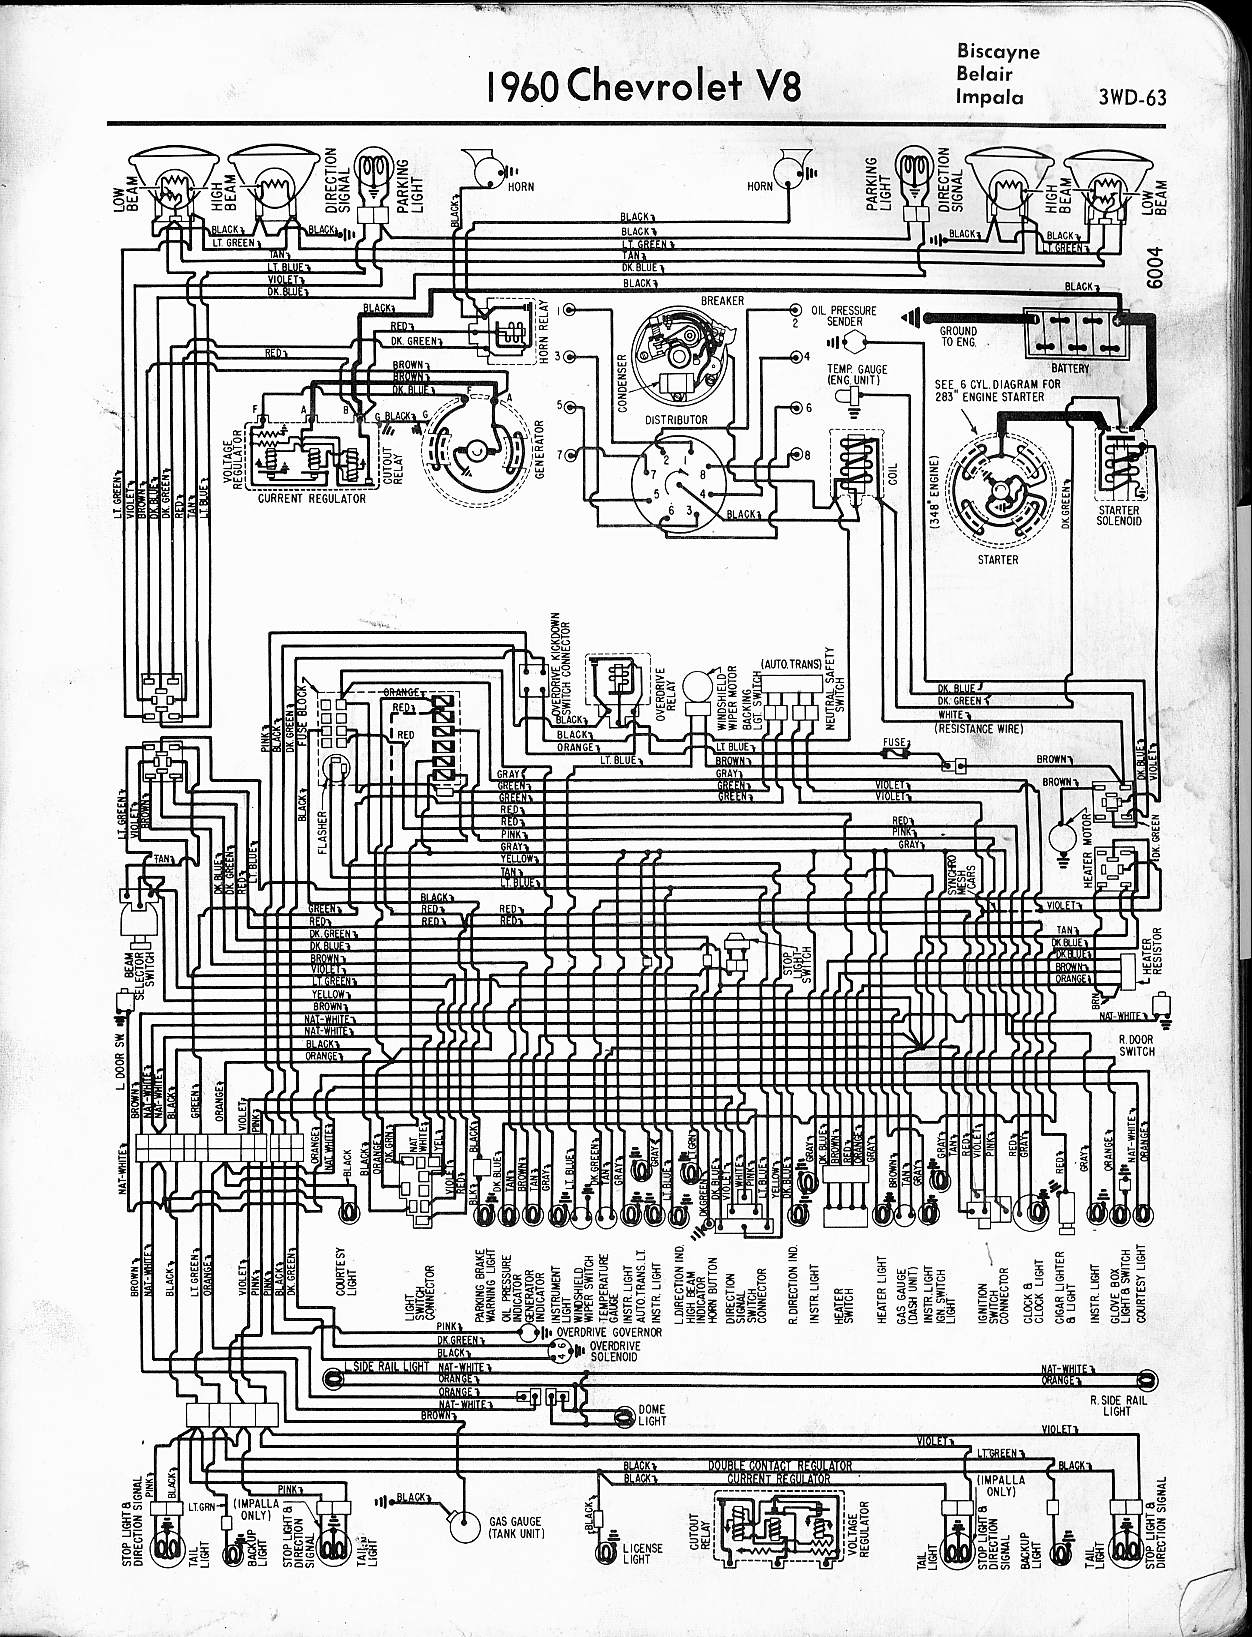 57 65 chevy wiring diagrams rh oldcarmanualproject com 2003 Chevy Impala Wiring Diagram 1963 Chevy Impala Wiring Diagram